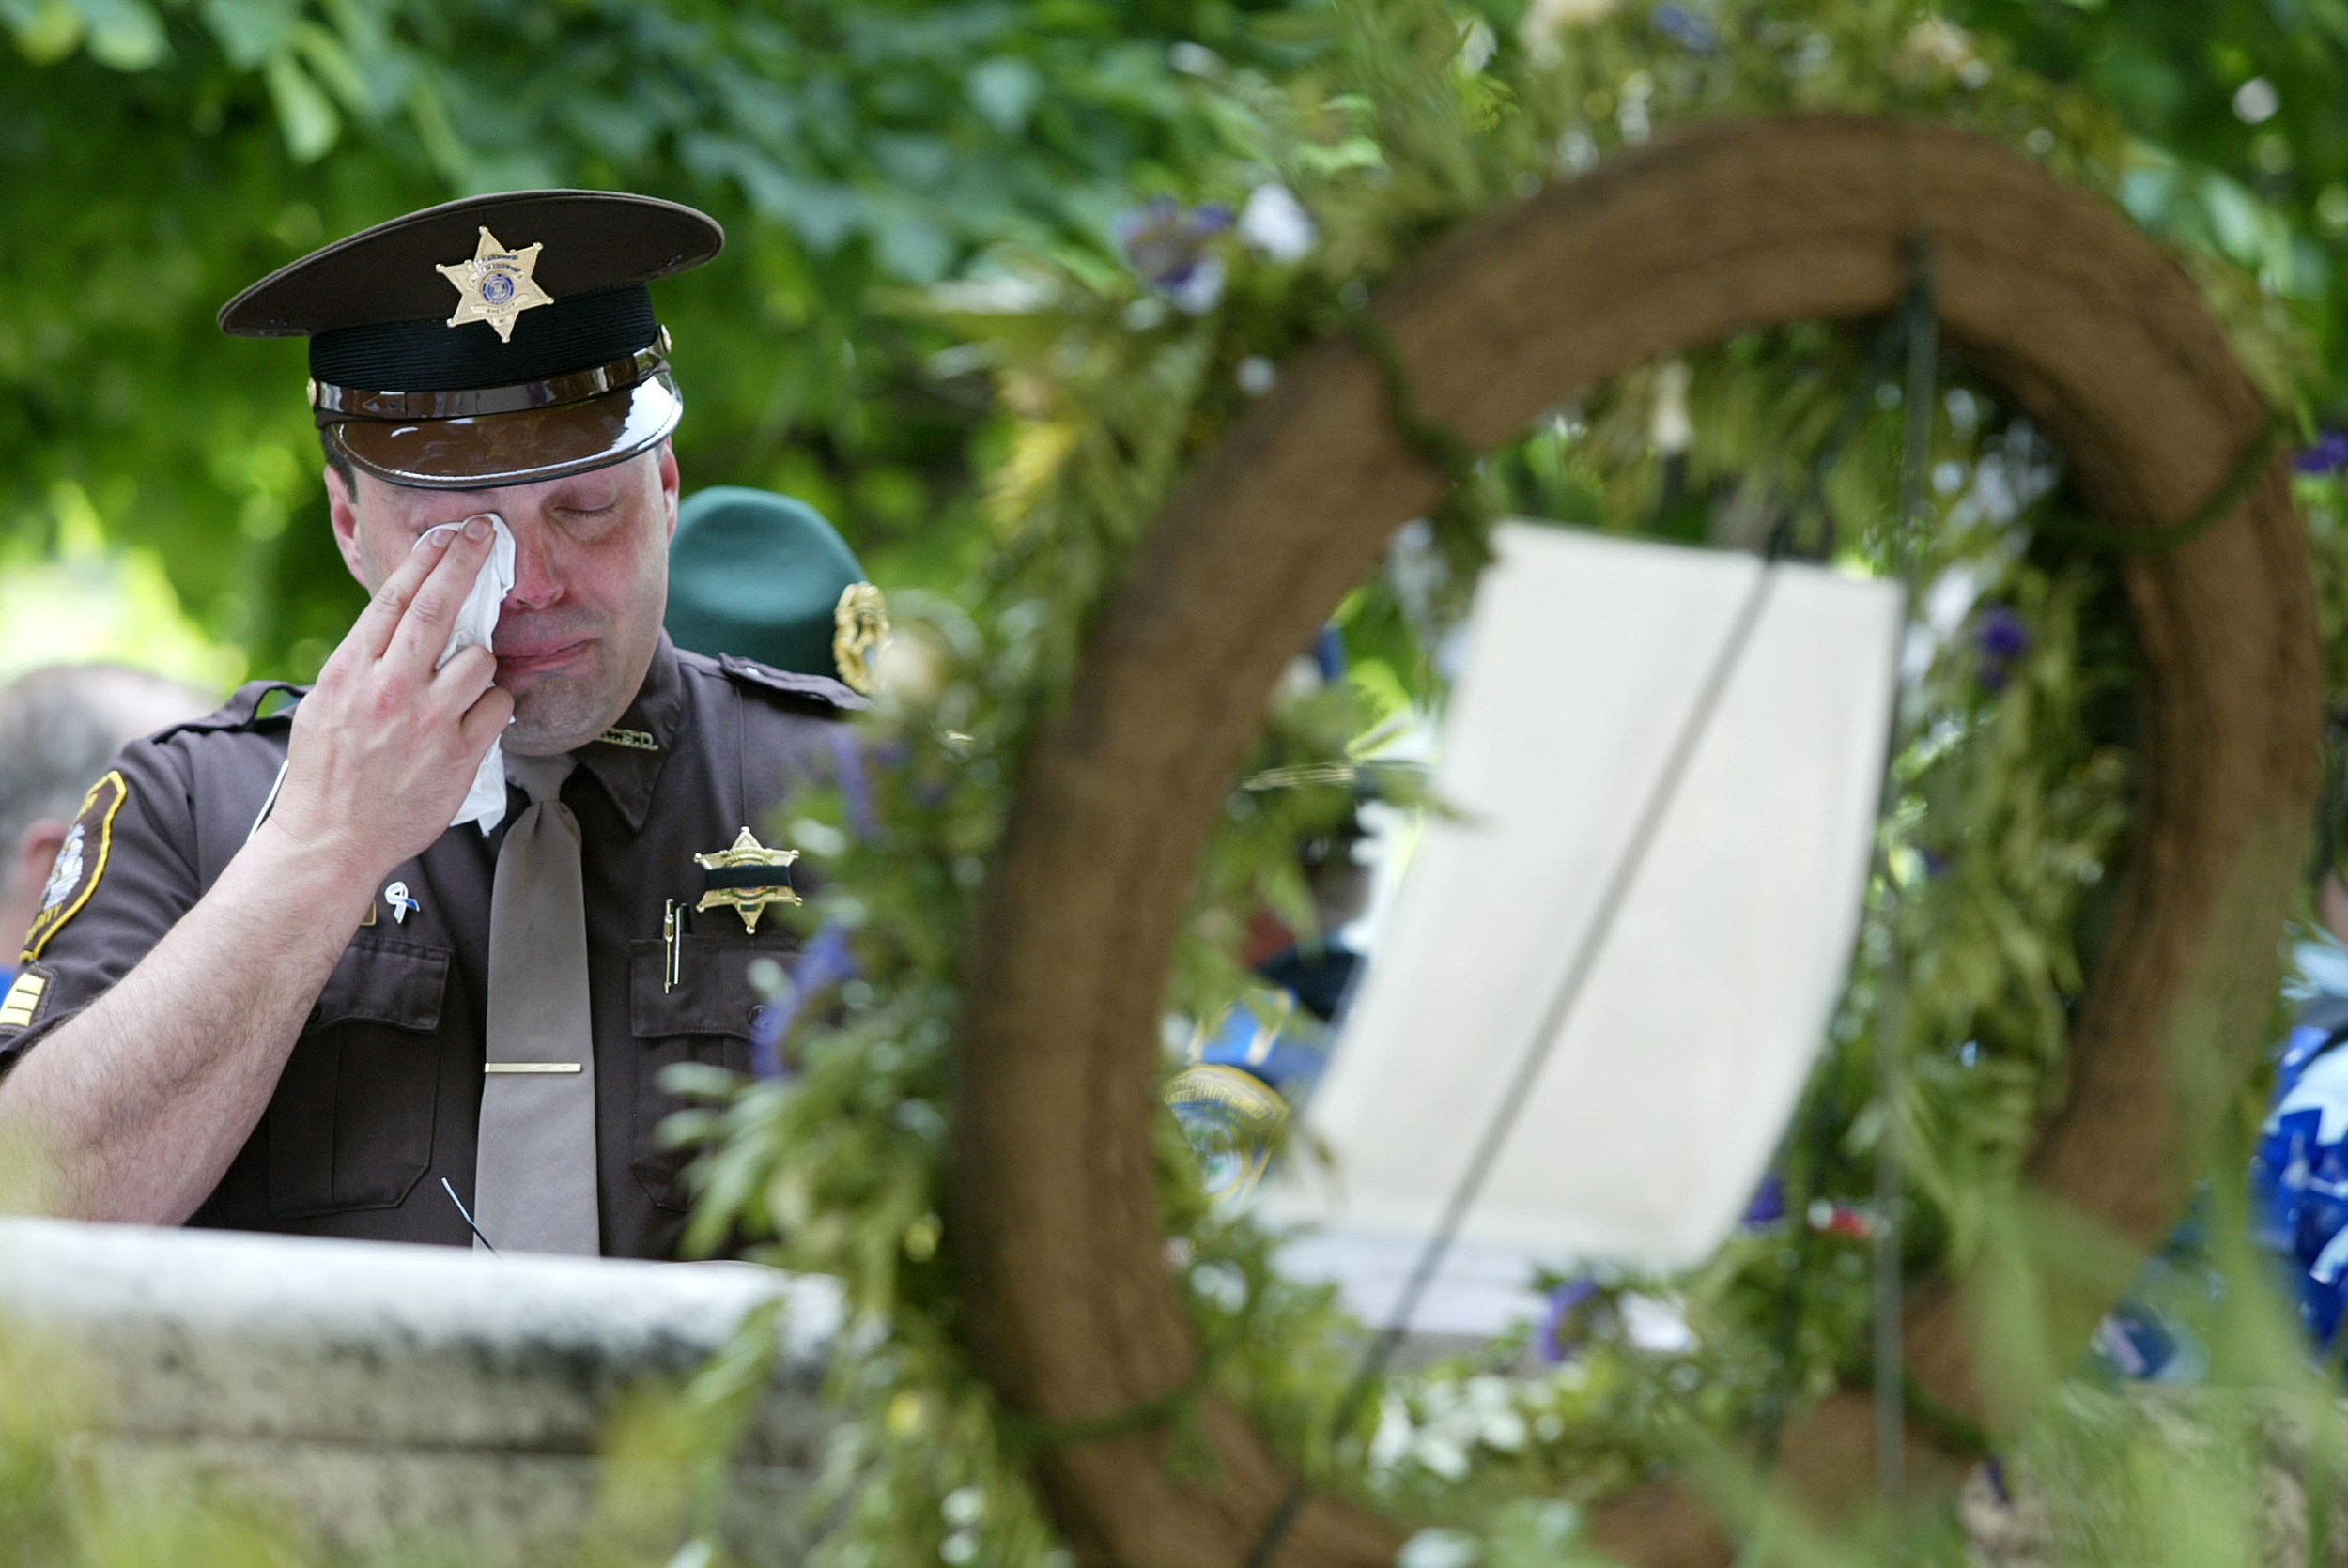 Sergeant Tony Grahovac of the sheriff department of Munising, Michigan, wipes his eyes as he moums the loss of his brother who was killed while investigating a muti-car accident, May 13, 2002 prior to the annual candlelight vigil at the National Law Enforcement Officers Memorial in Washington, DC. Thousands gather on the site of the National Law Enforcement Officers Memorial during Police Week each year to salute all of America's law enforcement heroes.